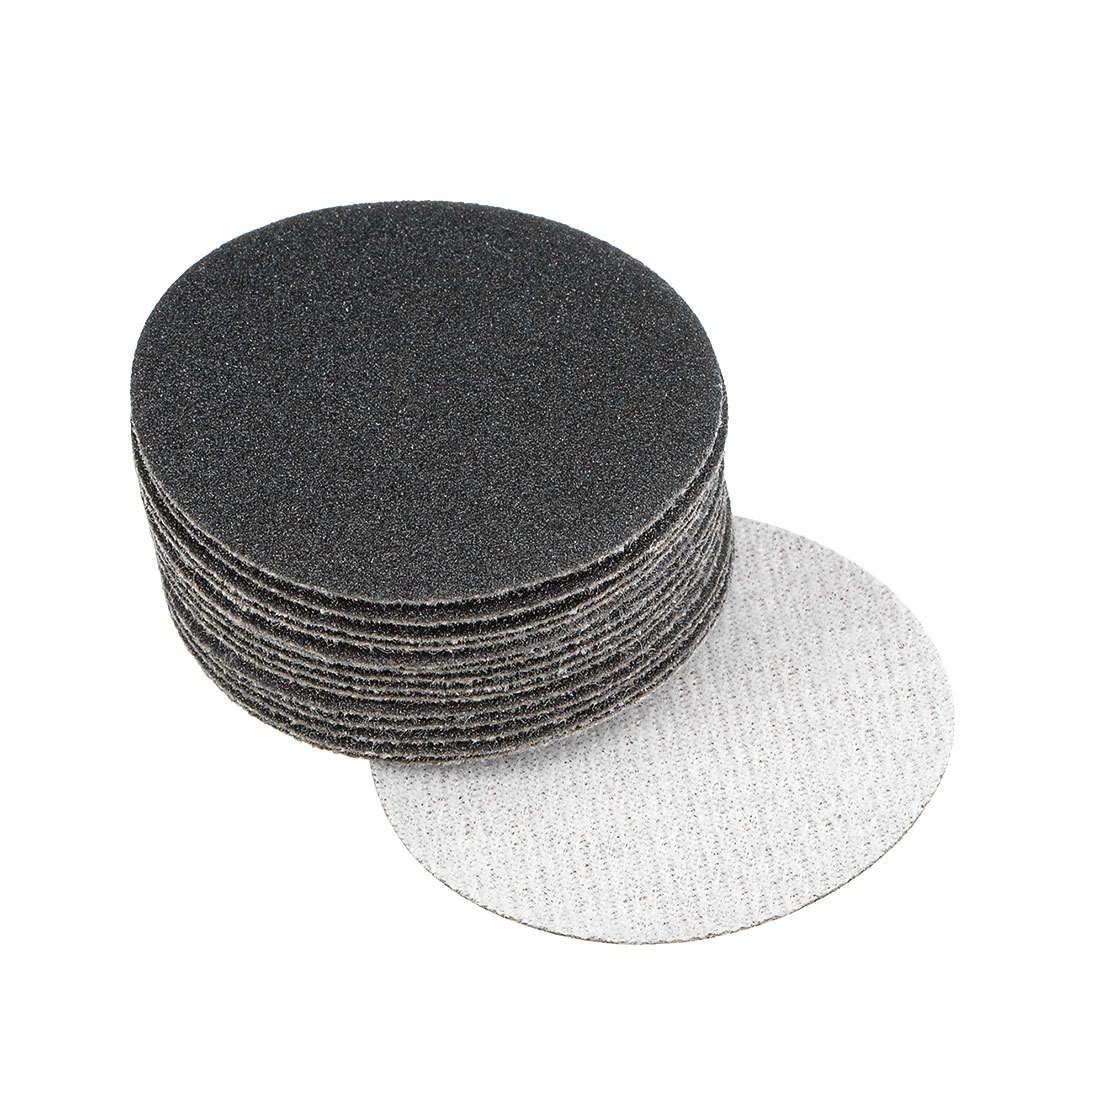 2 inch Wet Dry Discs 120 Grit Hook and Loop Sanding Disc Silicon Carbide 15pcs